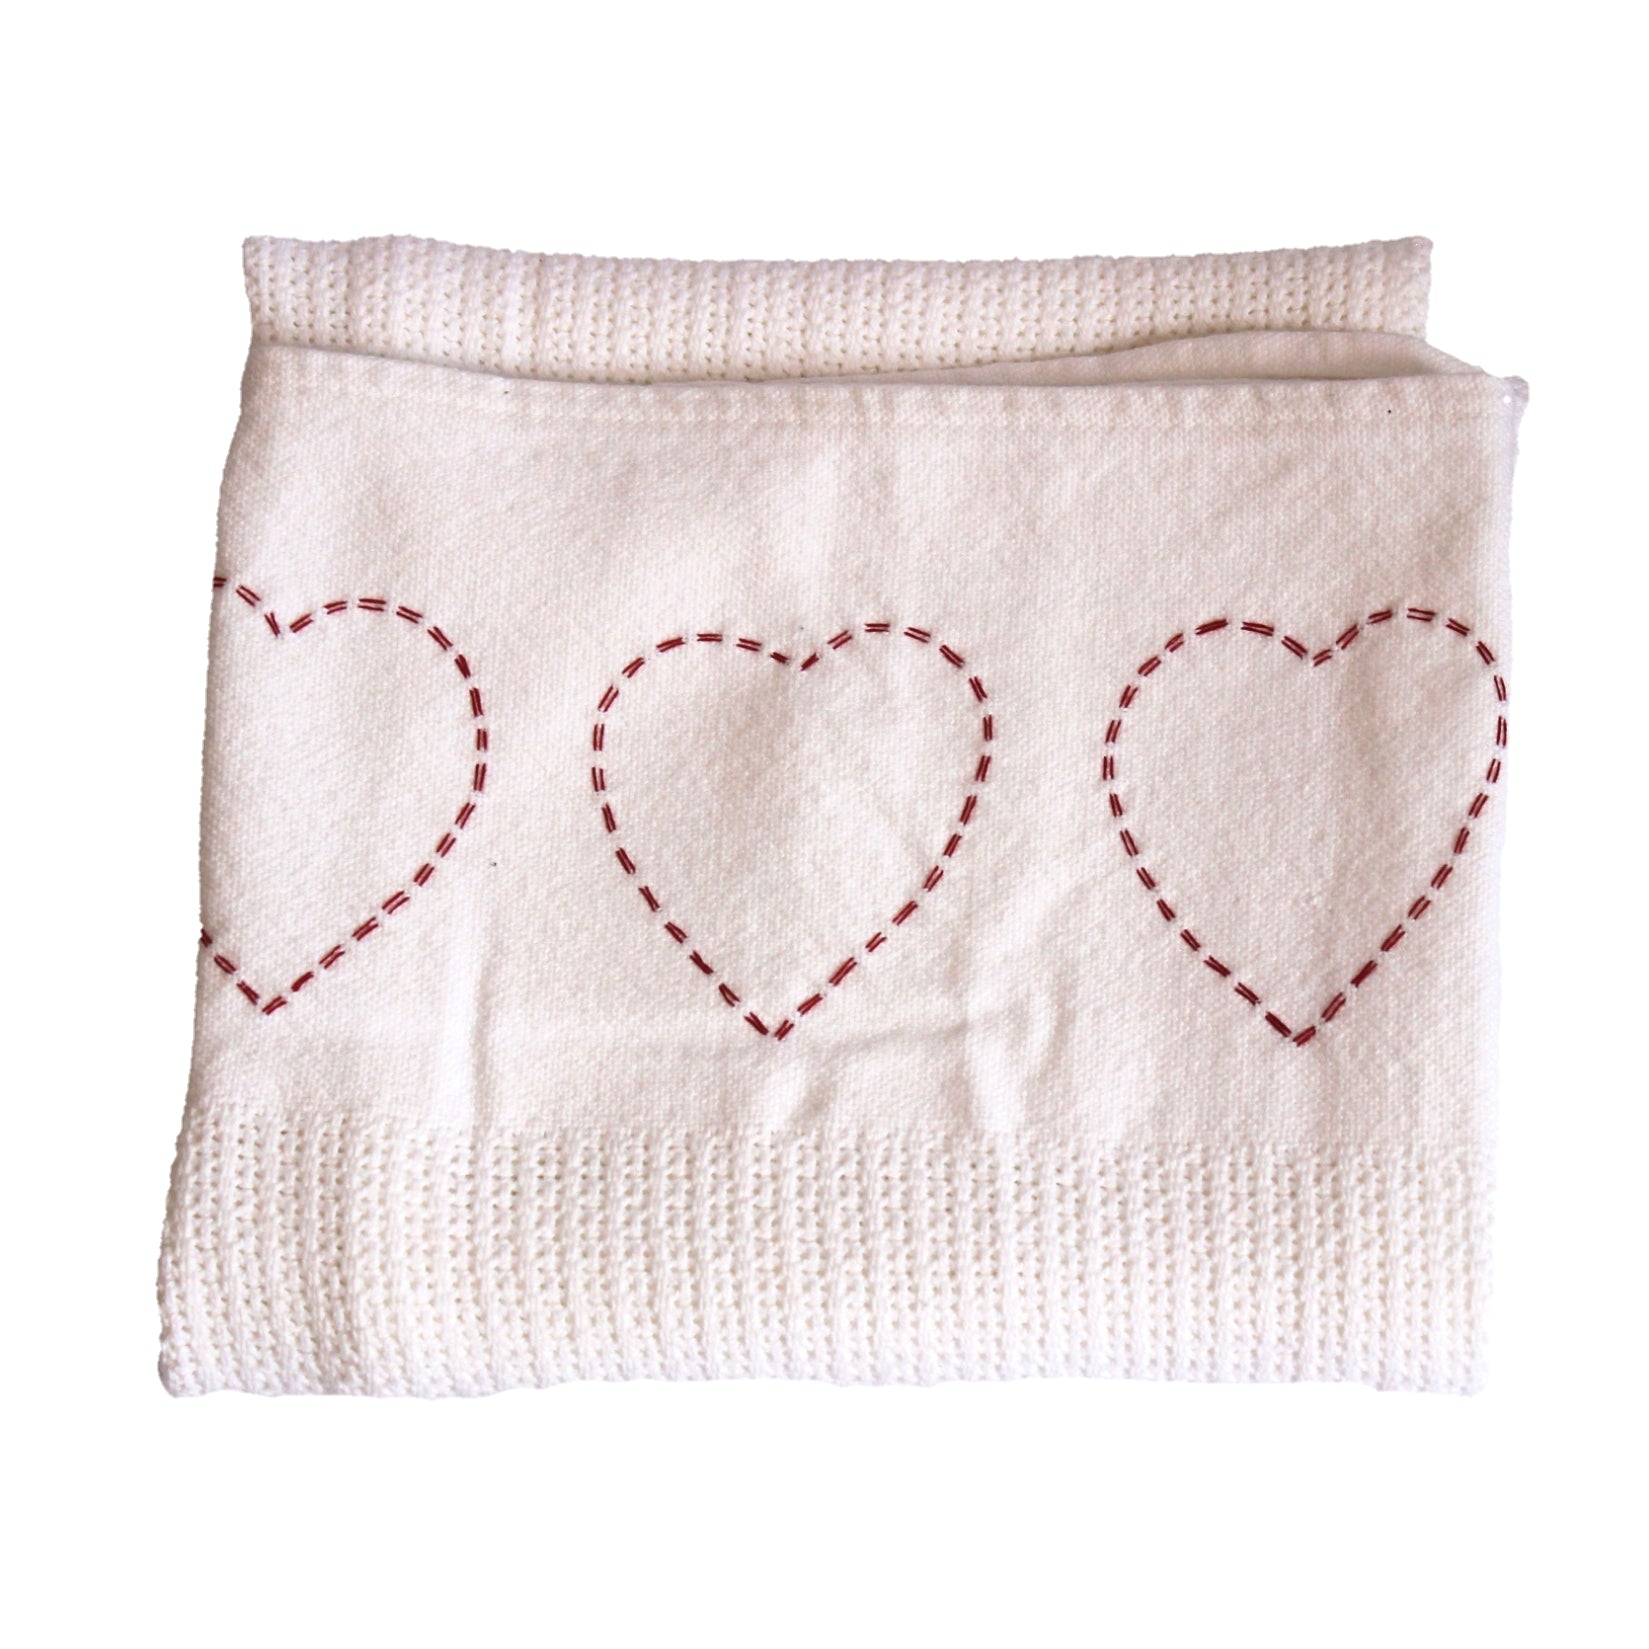 100% Cotton Cellular Blanket - Hand Embroidered Red Hearts